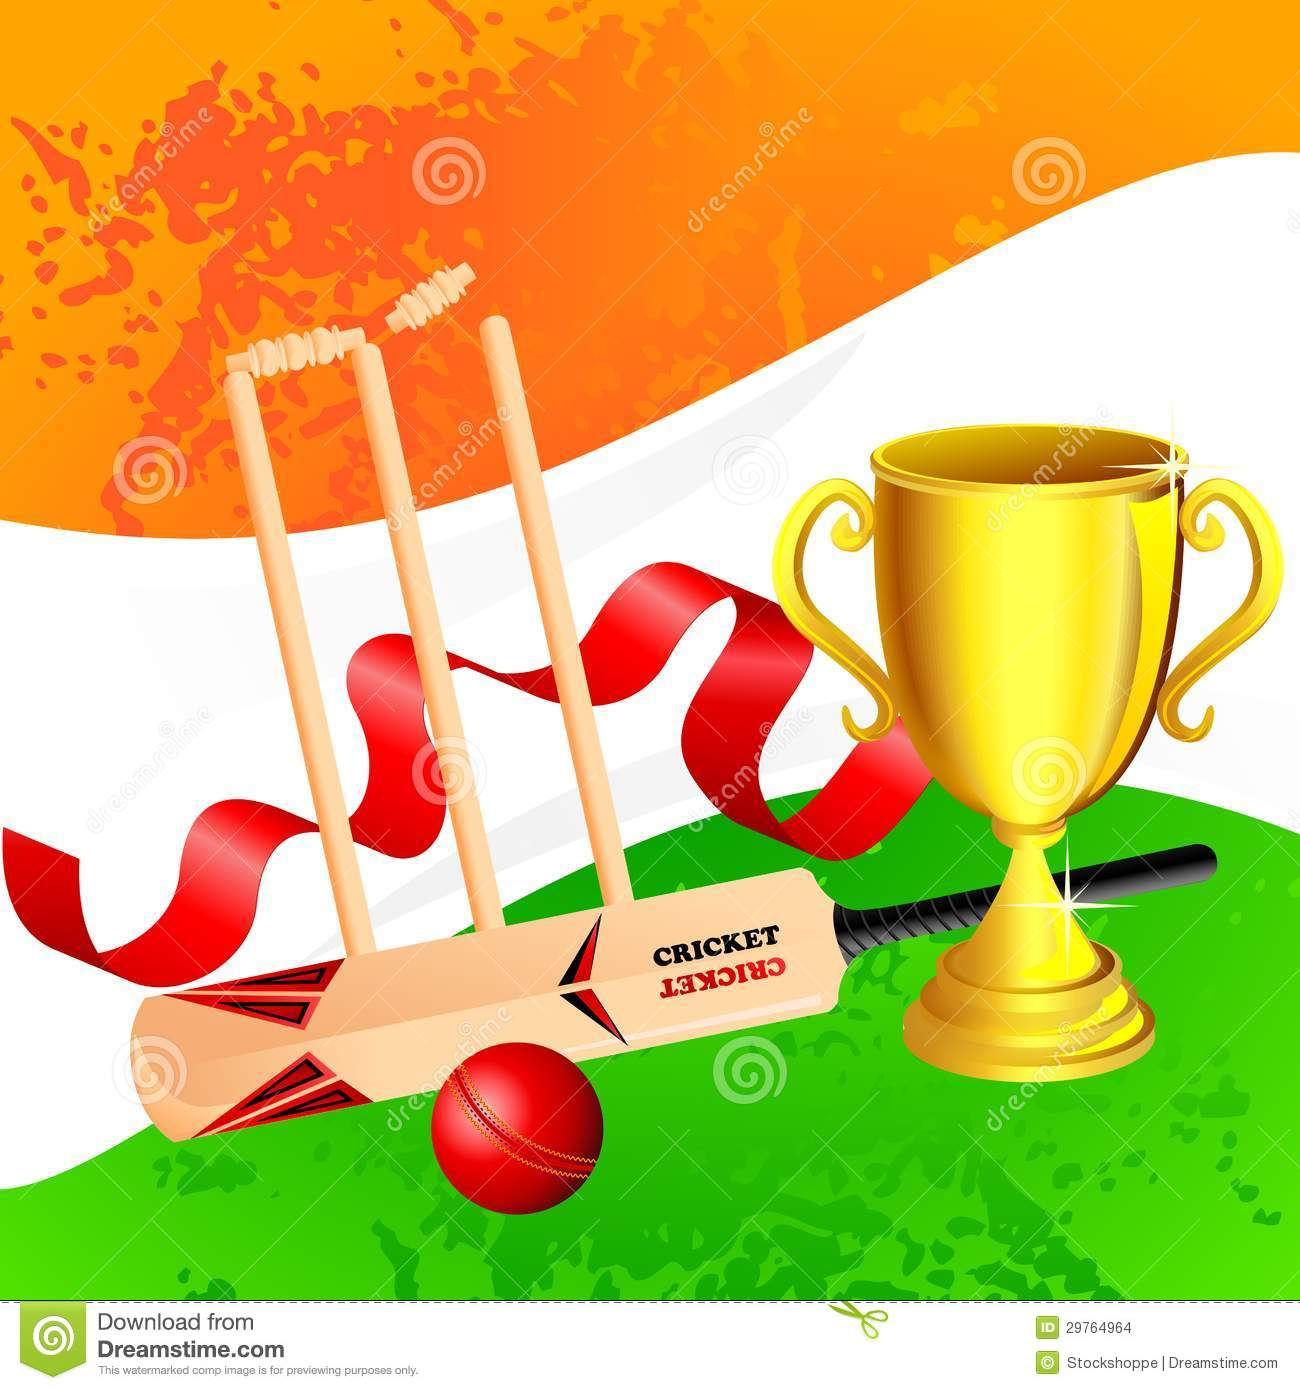 Cricket trophy clipart